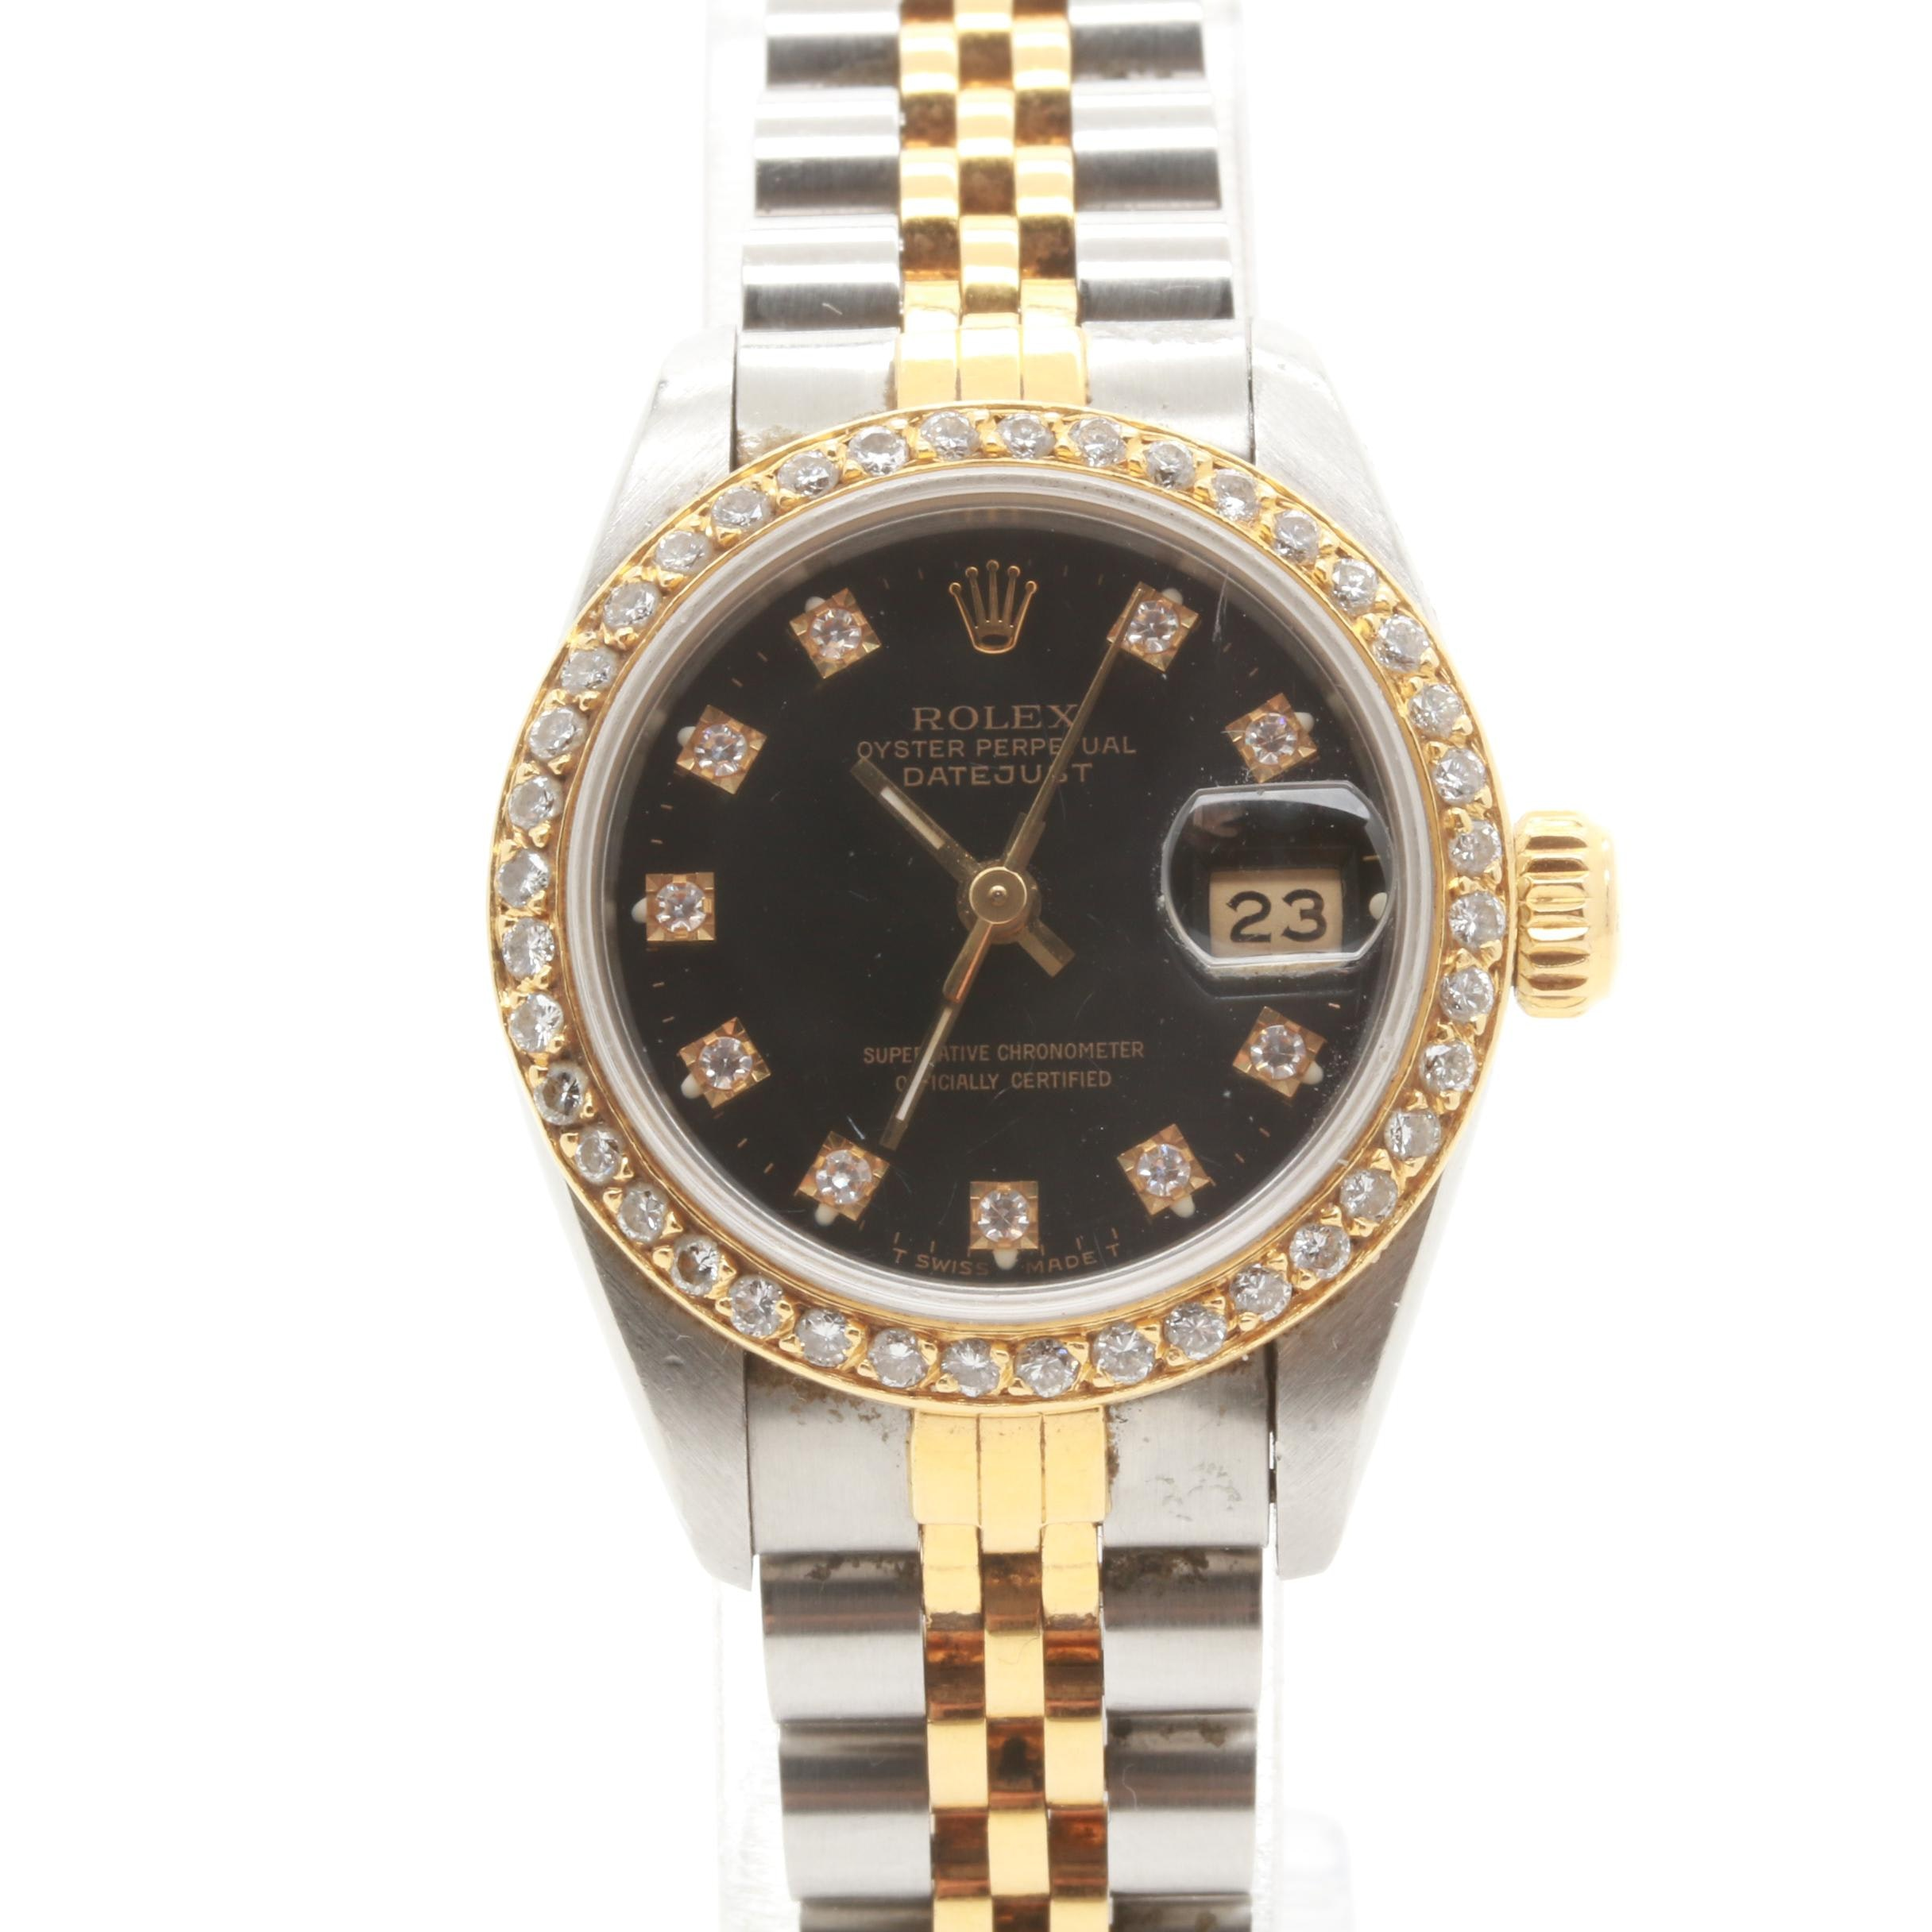 Circa 1990 Rolex Stainless Steel and 18K Yellow Gold Diamond Wristwatch